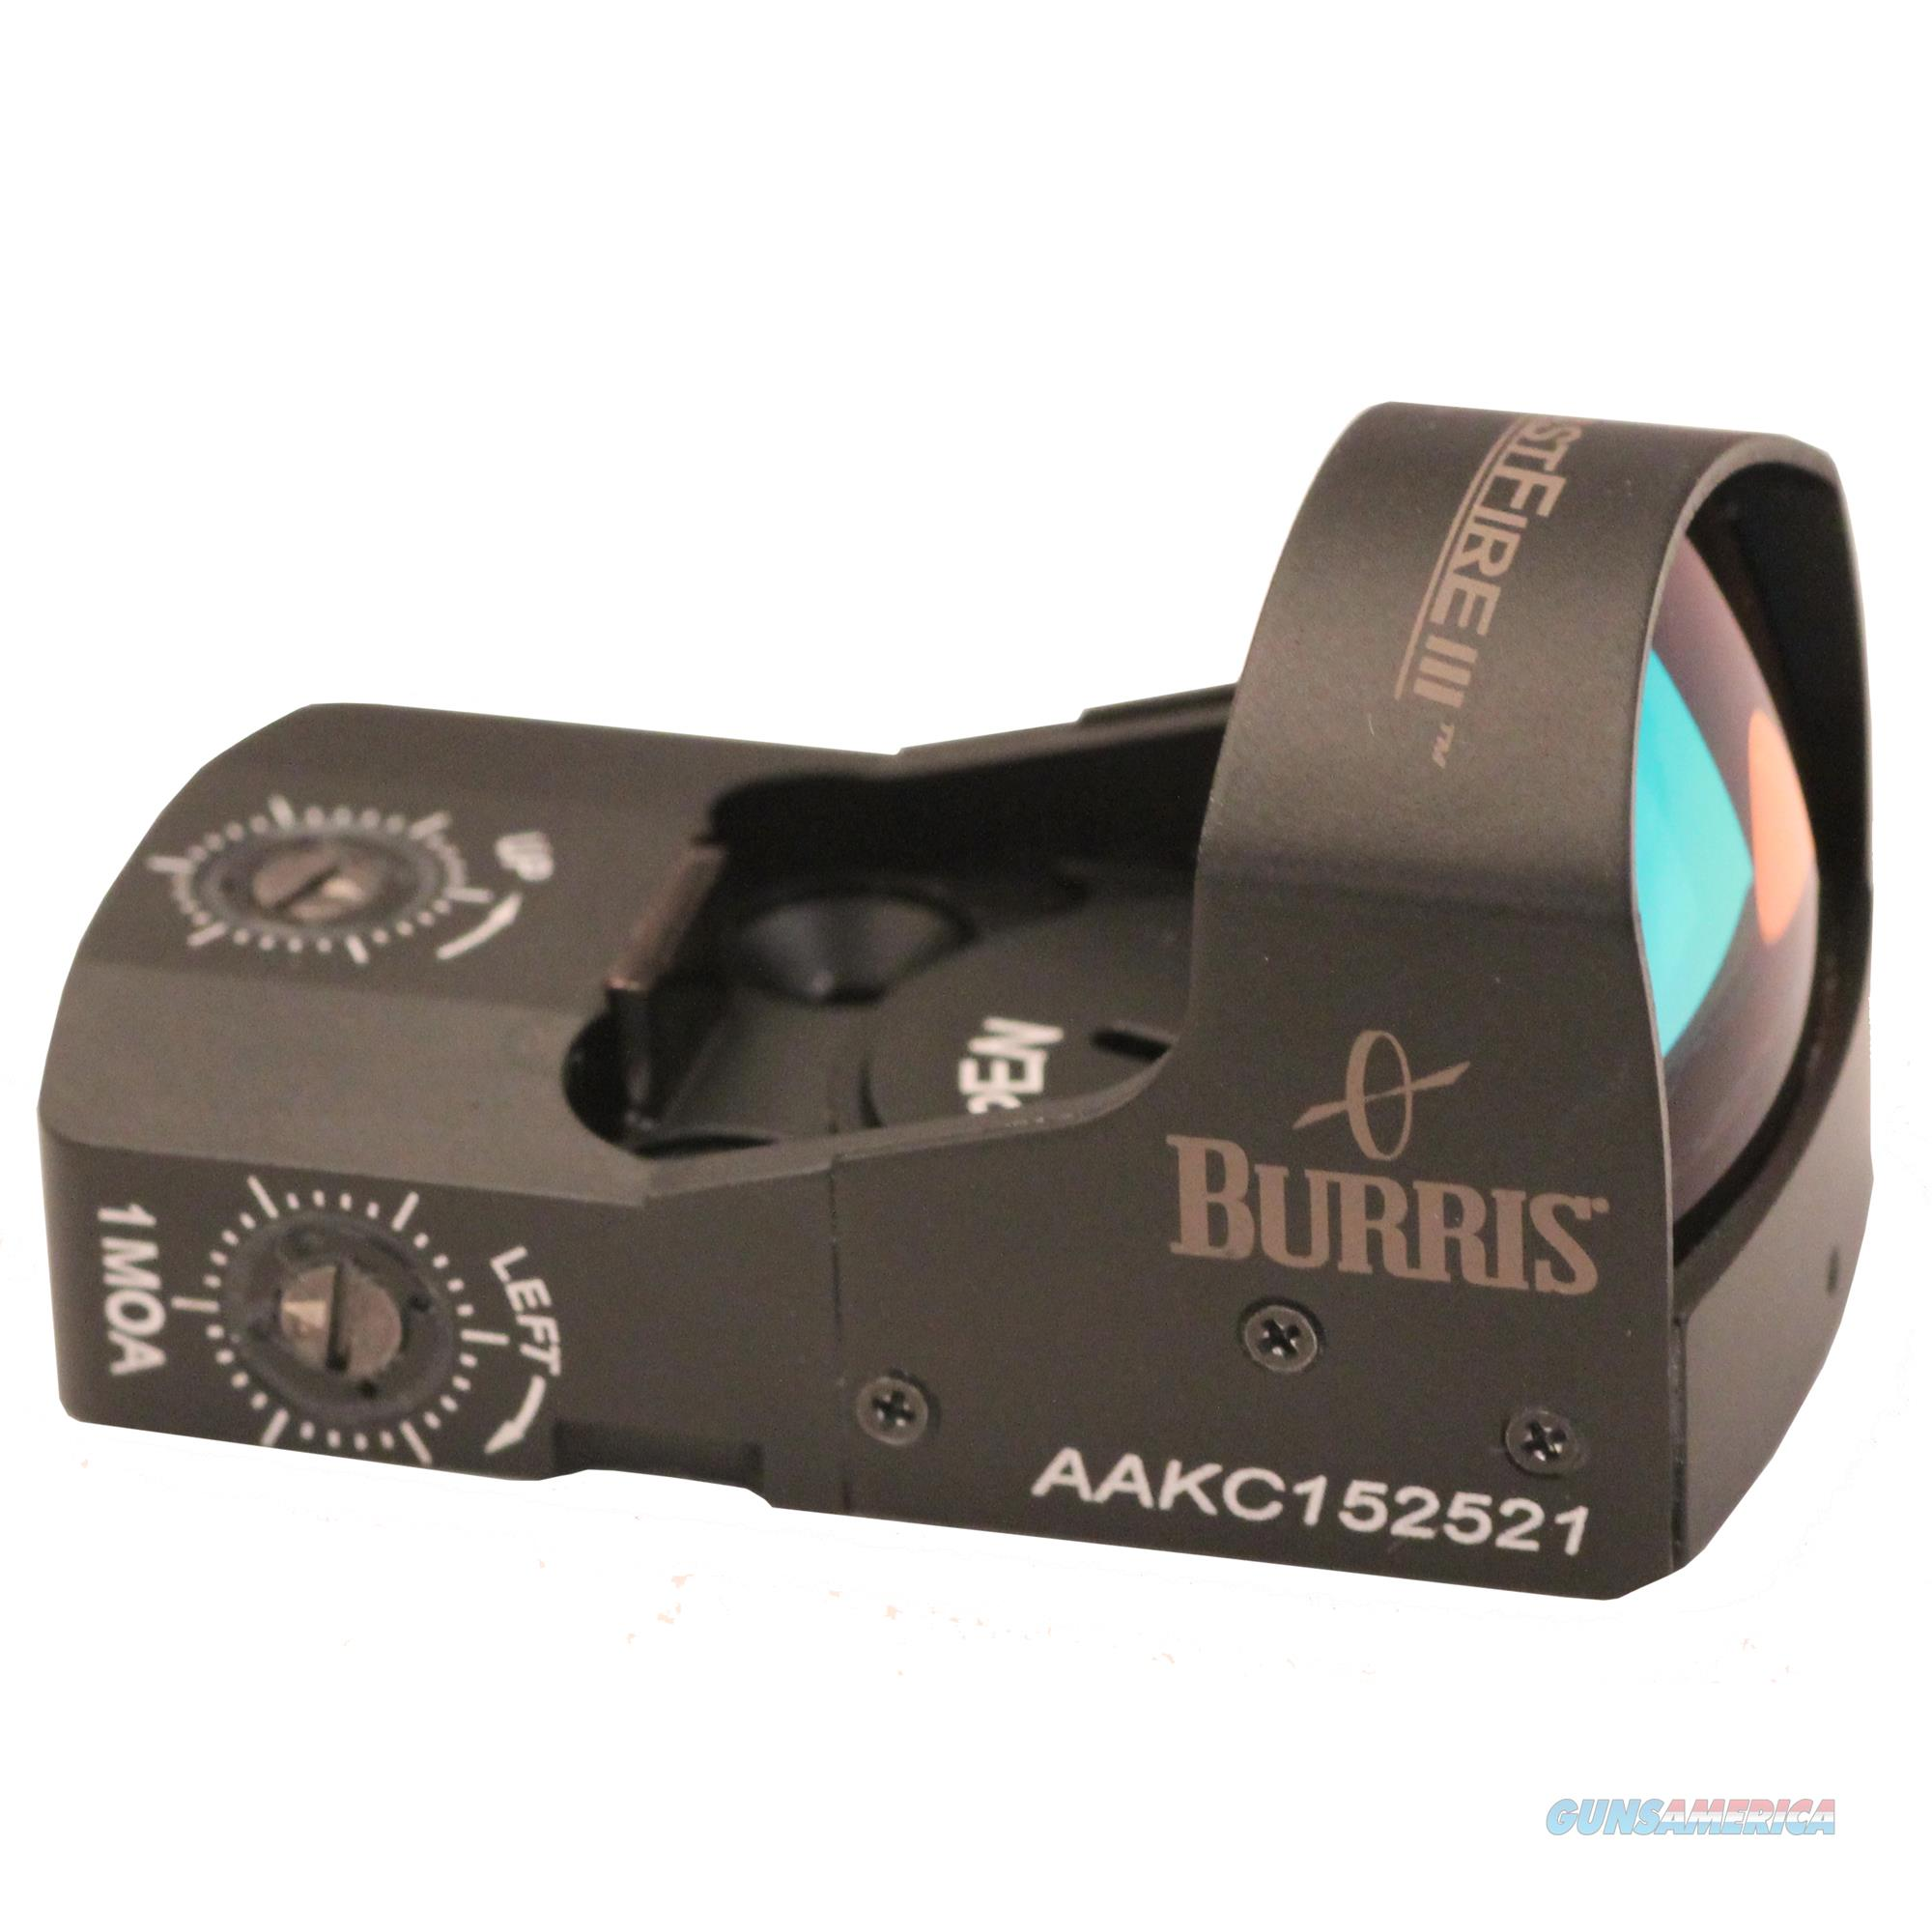 Burris Fastfire Iii 300234  Non-Guns > Iron/Metal/Peep Sights